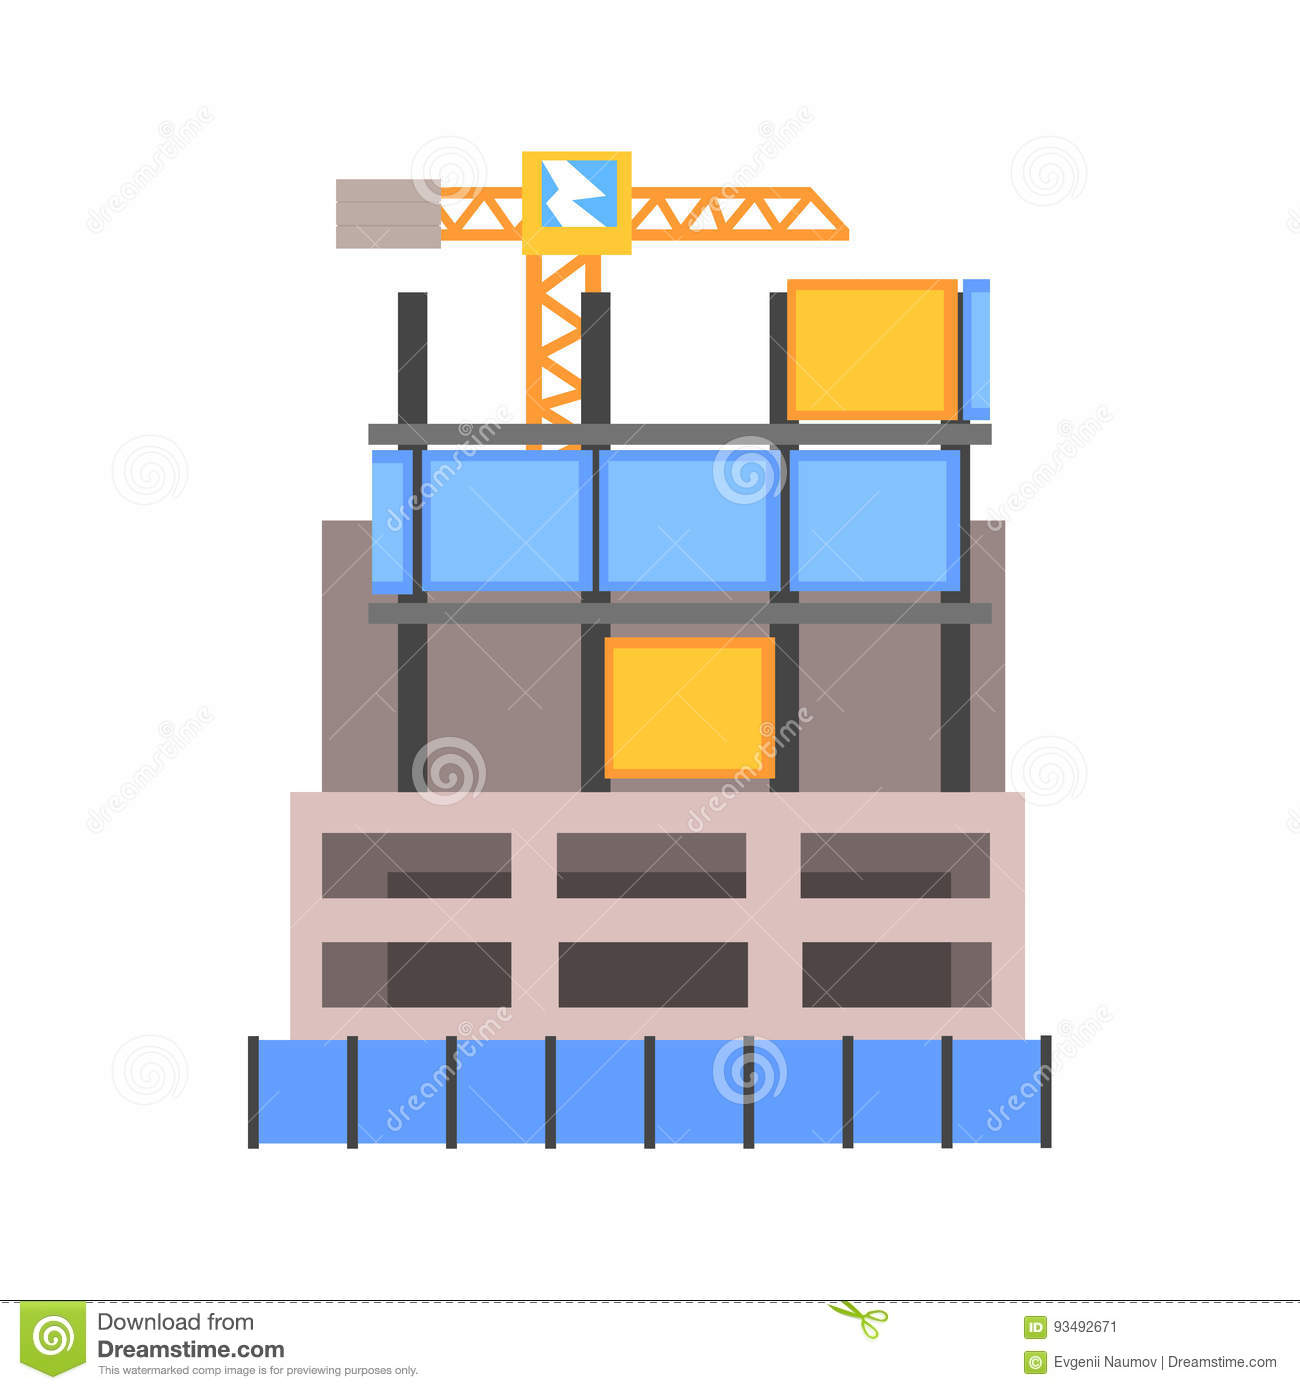 Reinforcement cartoons illustrations vector stock for Modern building construction